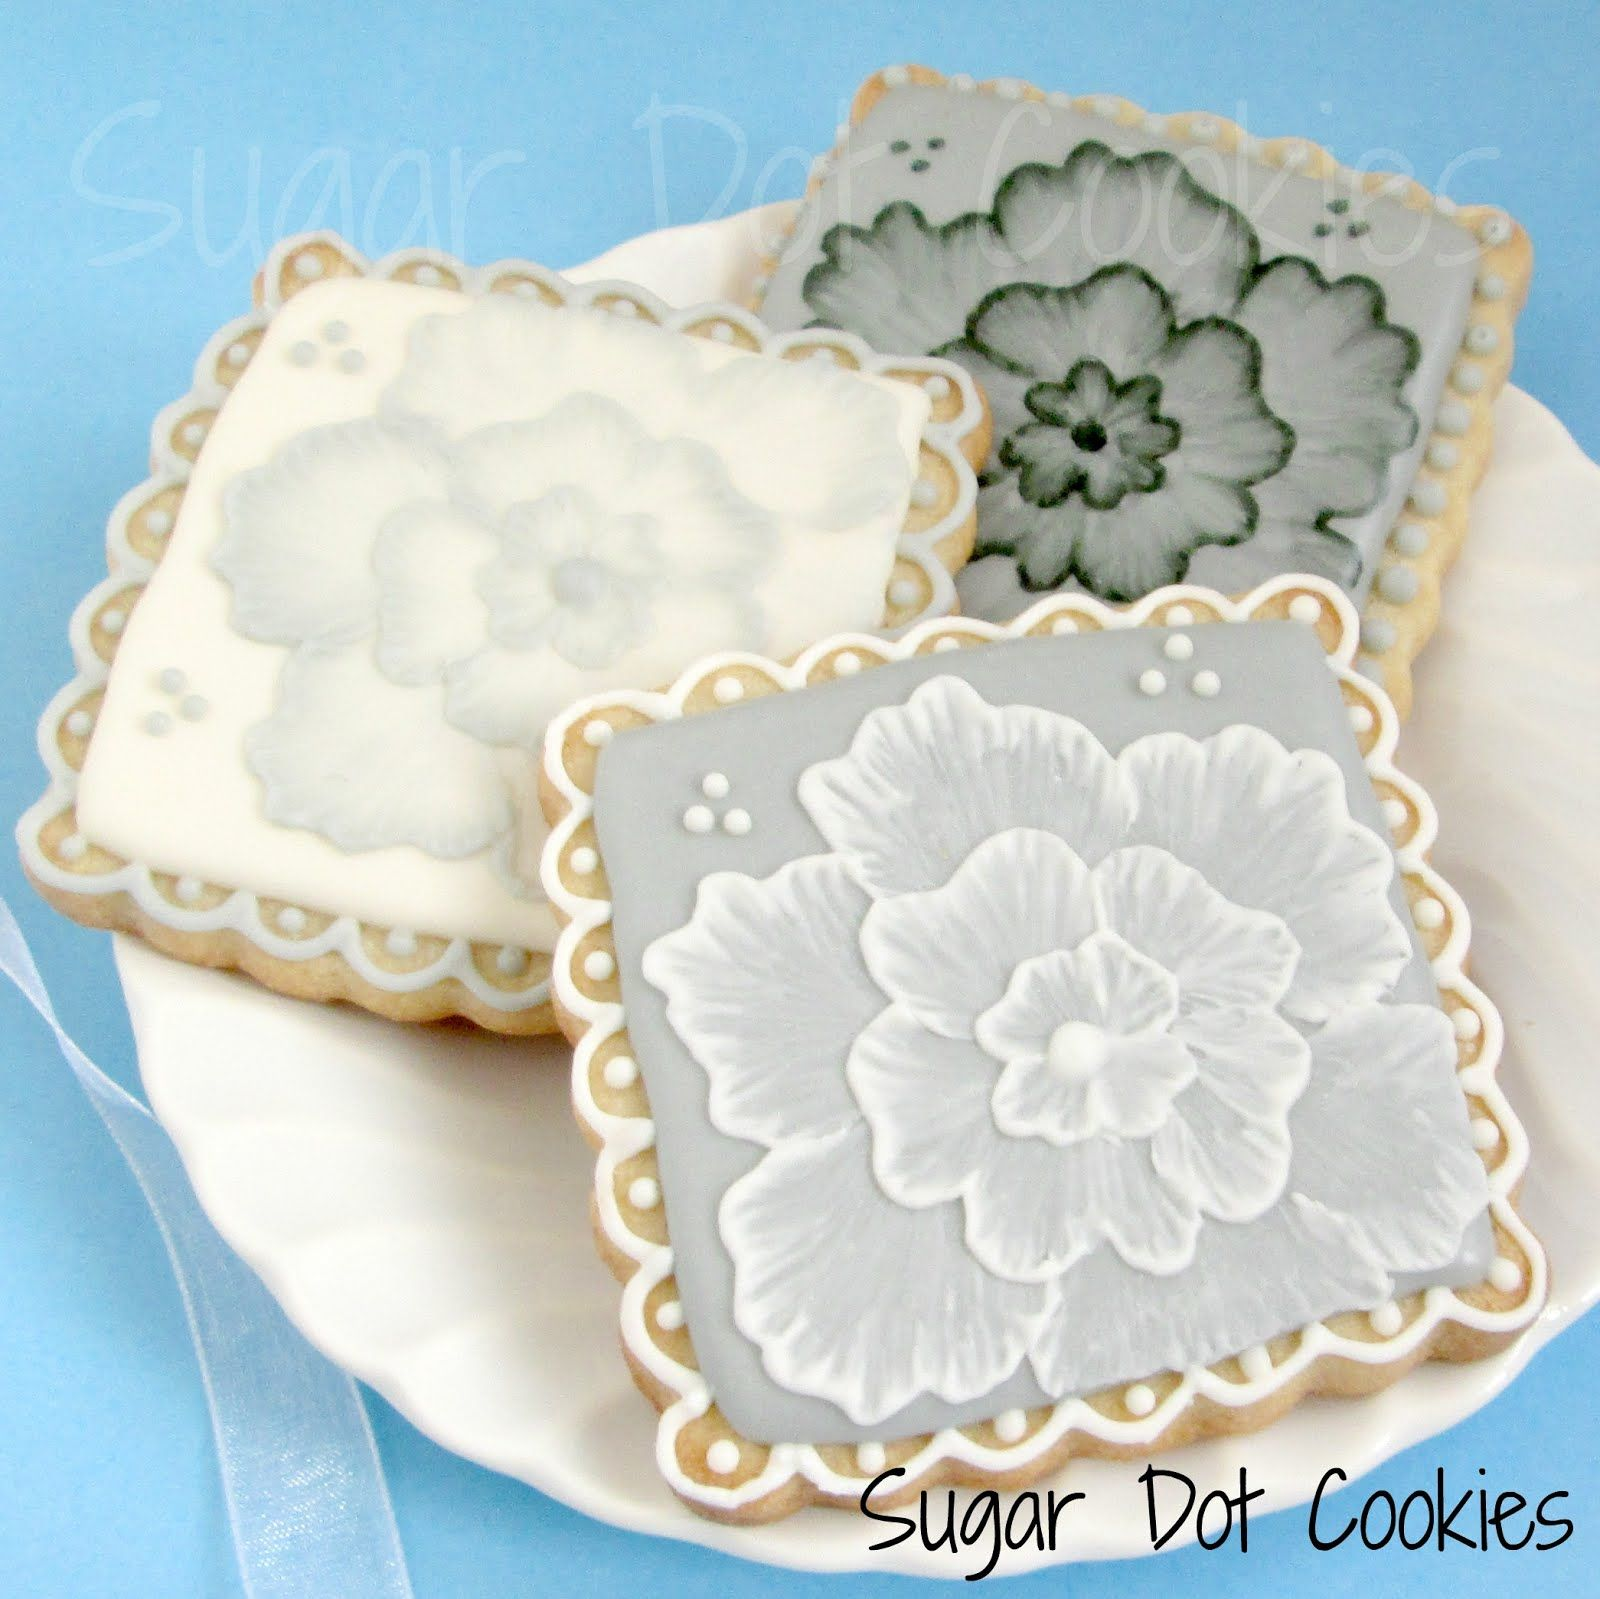 Sugar Dot Cookies: Wedding Sugar Cookies